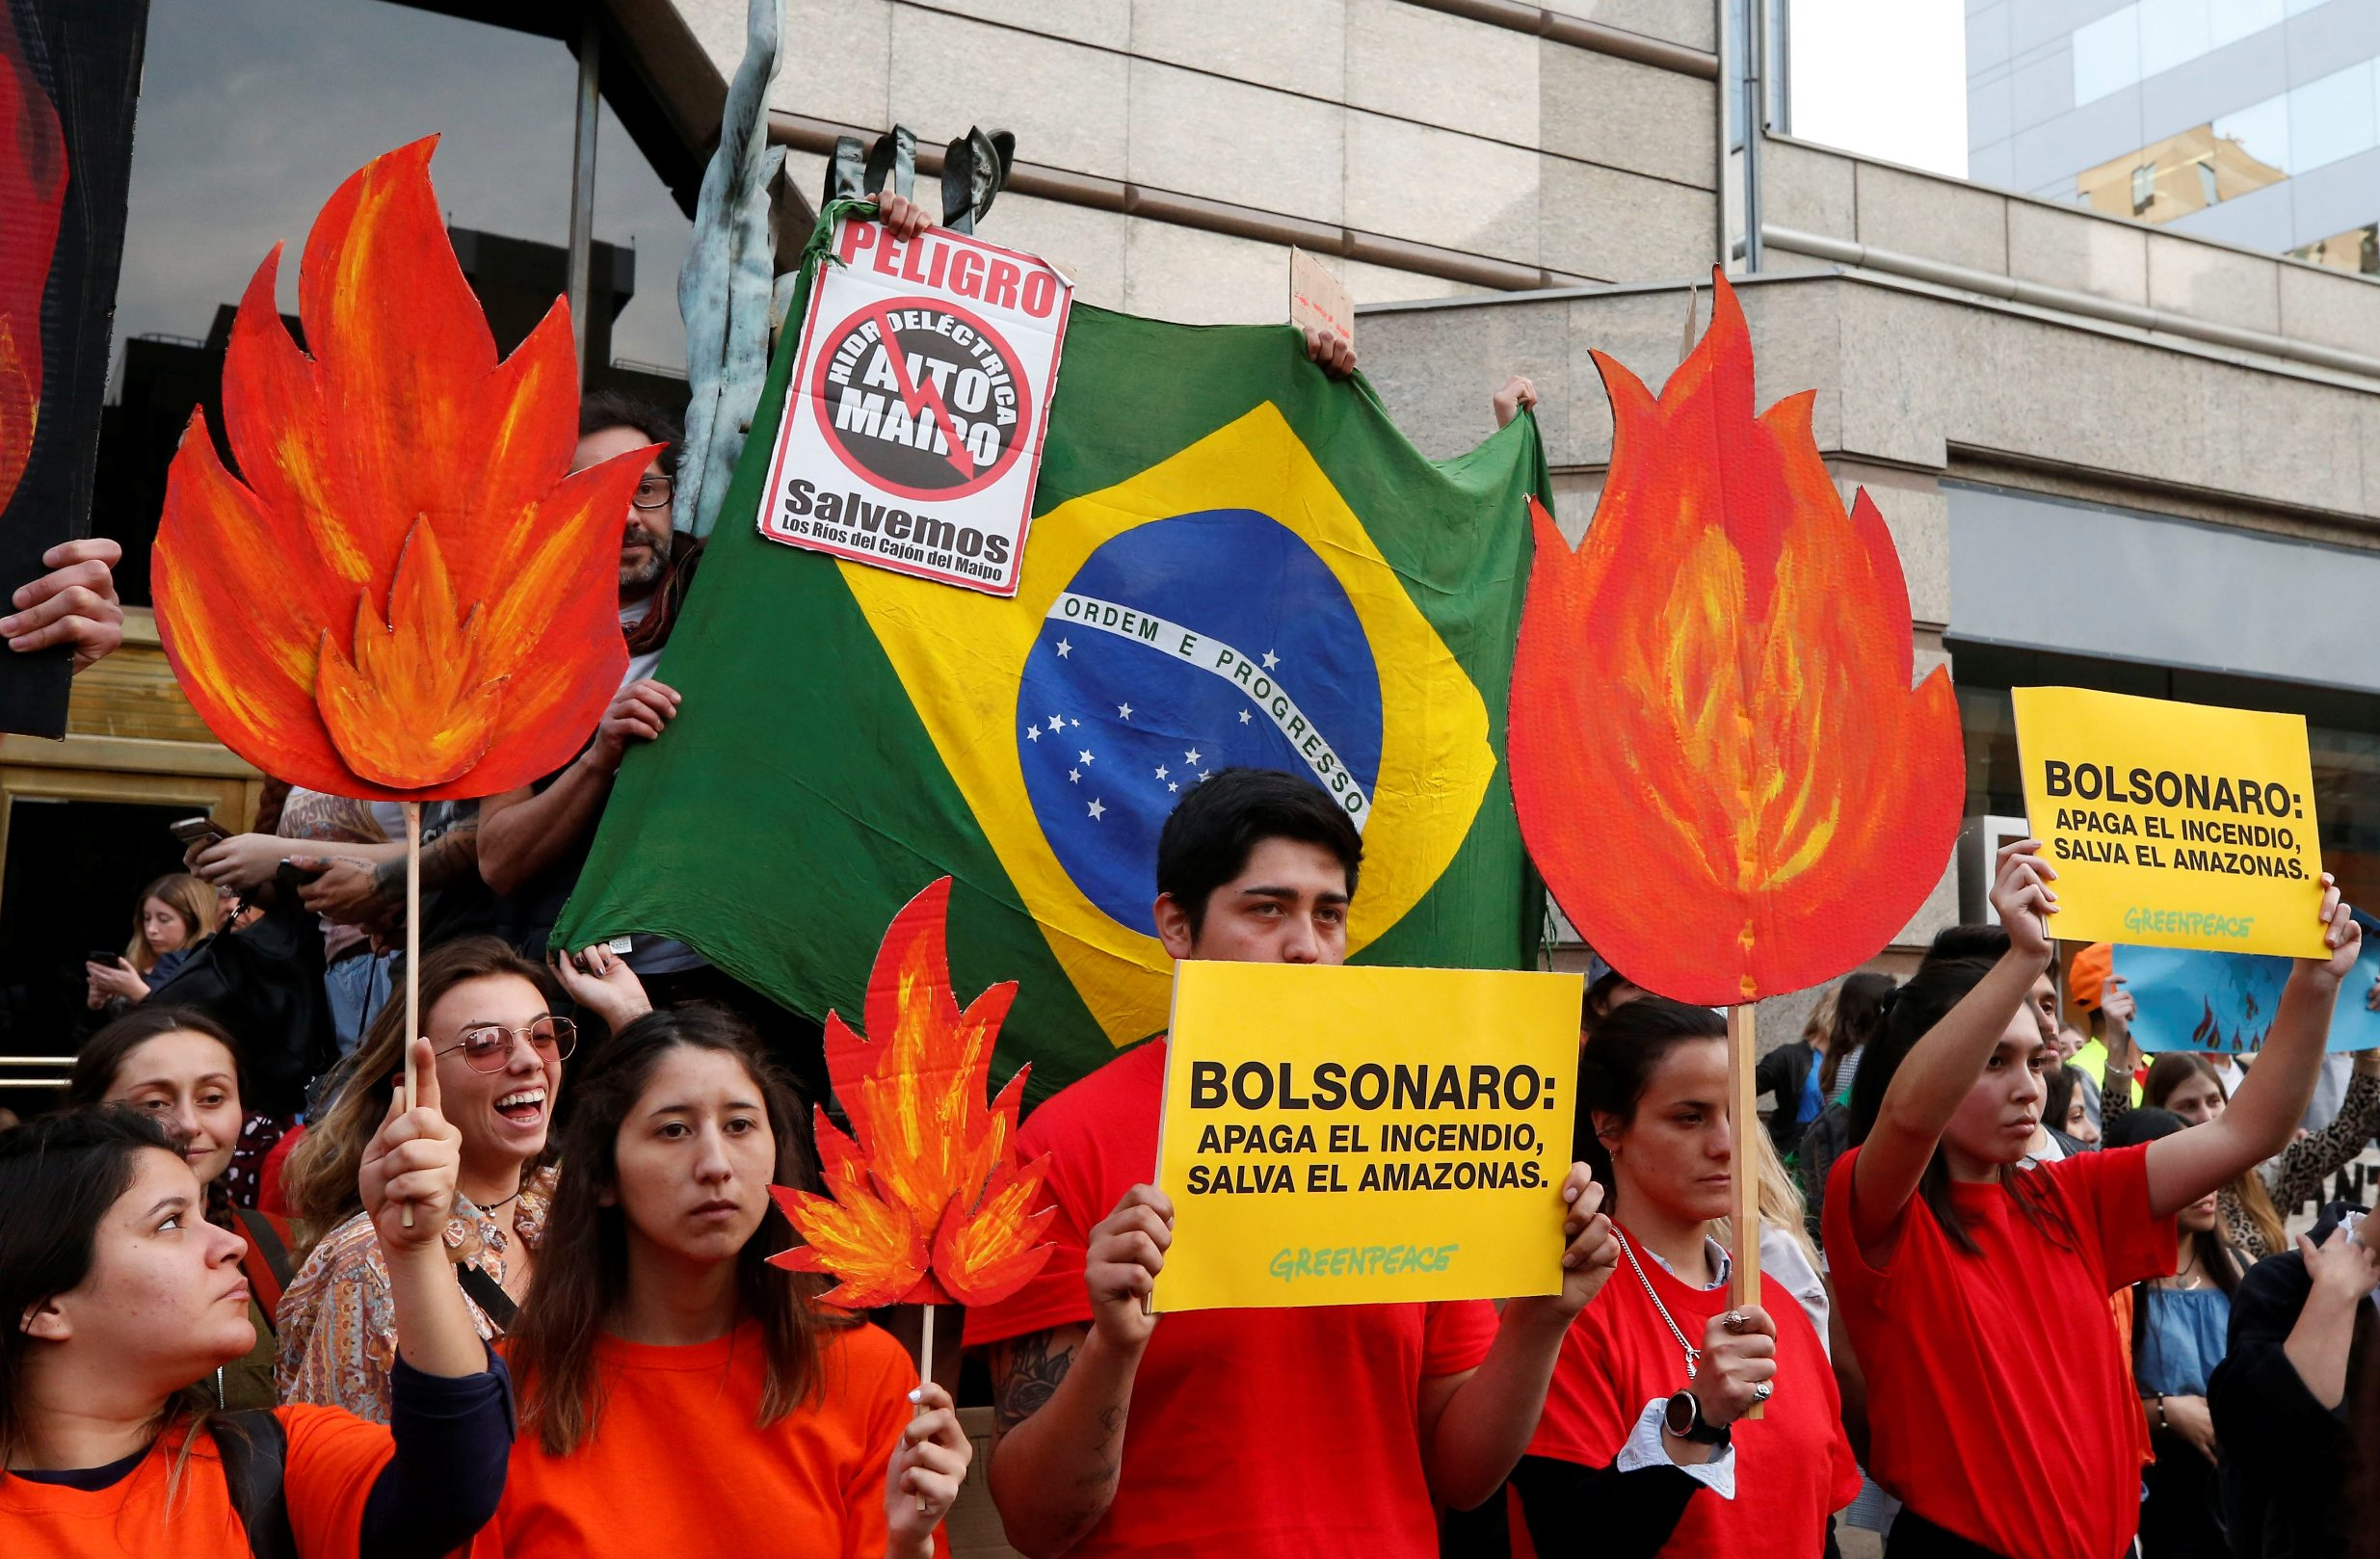 2019-08-23T230933Z_1127053643_RC185DC8CD70_RTRMADP_3_BRAZIL-ENVIRONMENT-PROTESTS-CHILE